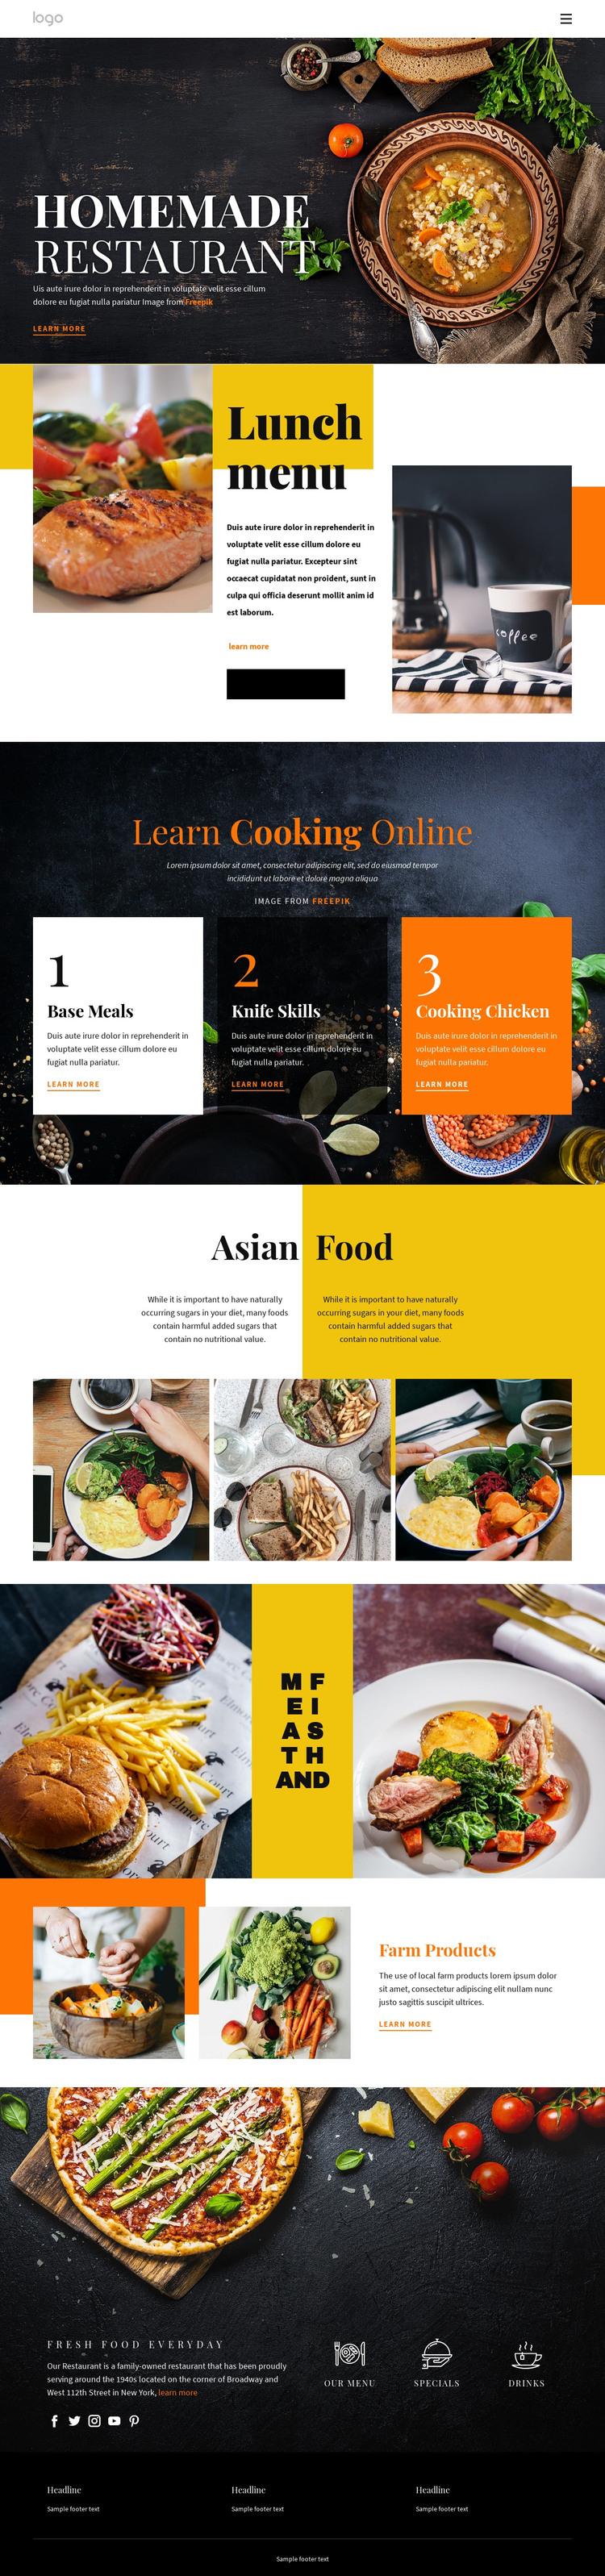 Better than home food Homepage Design